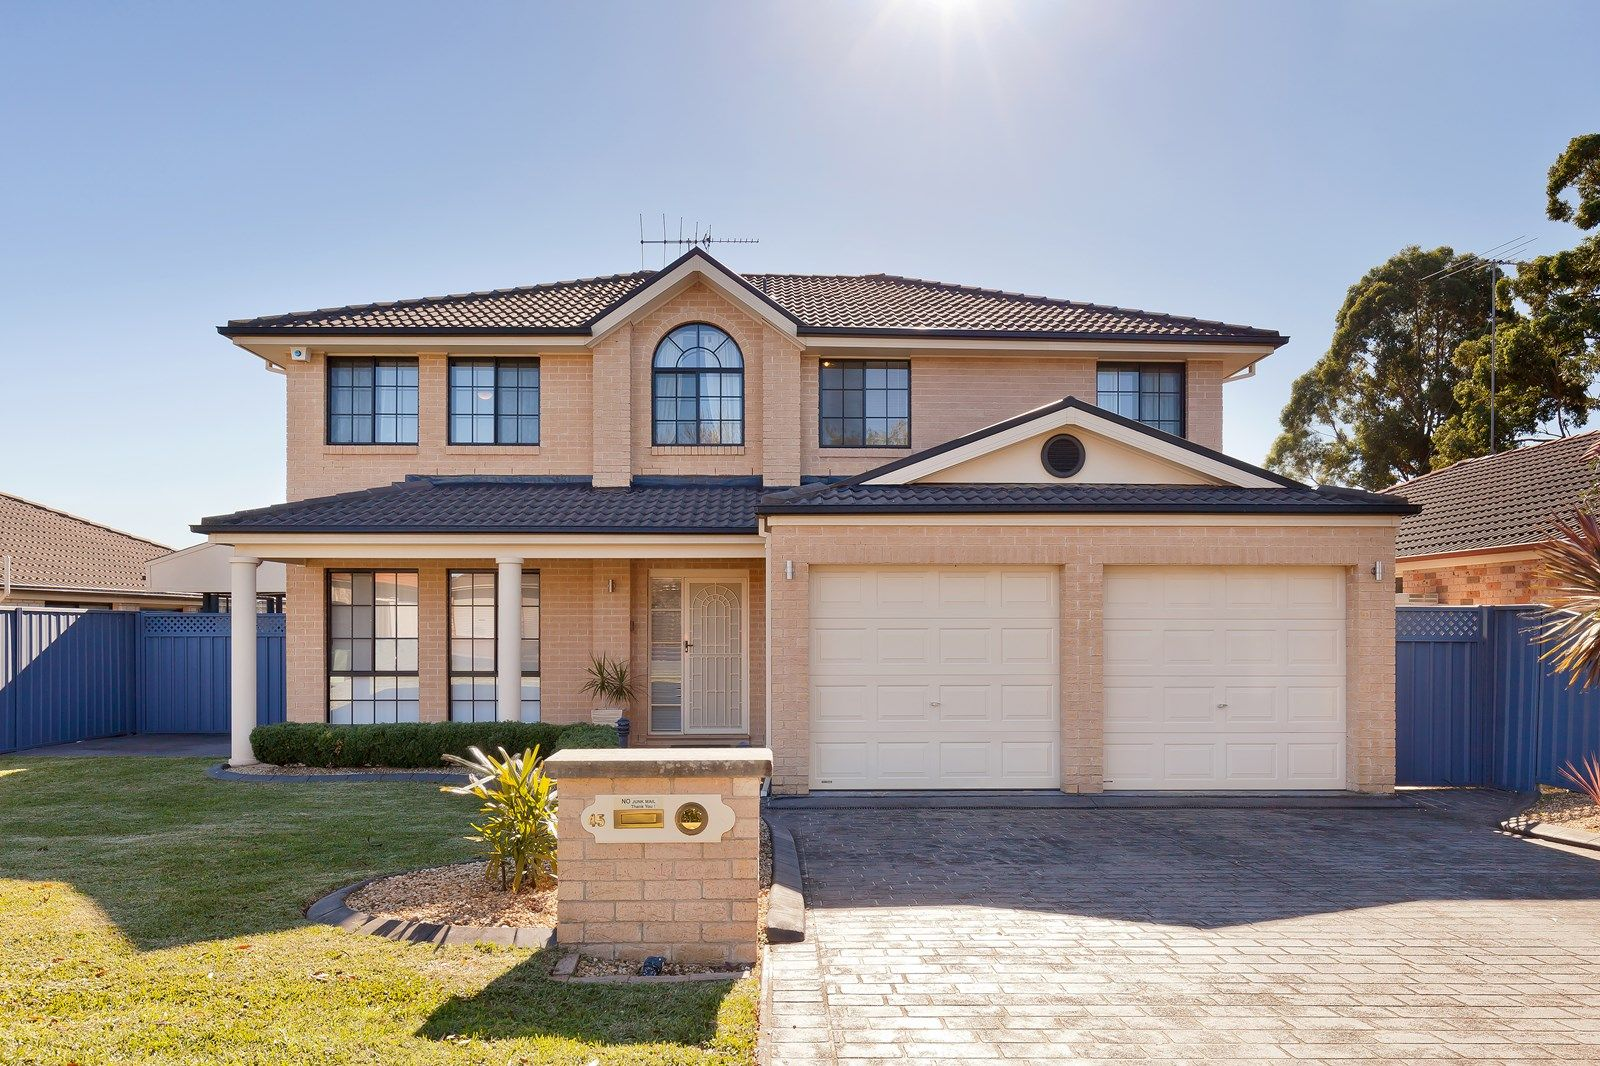 45 The Lakes Drive, Glenmore Park NSW 2745, Image 6